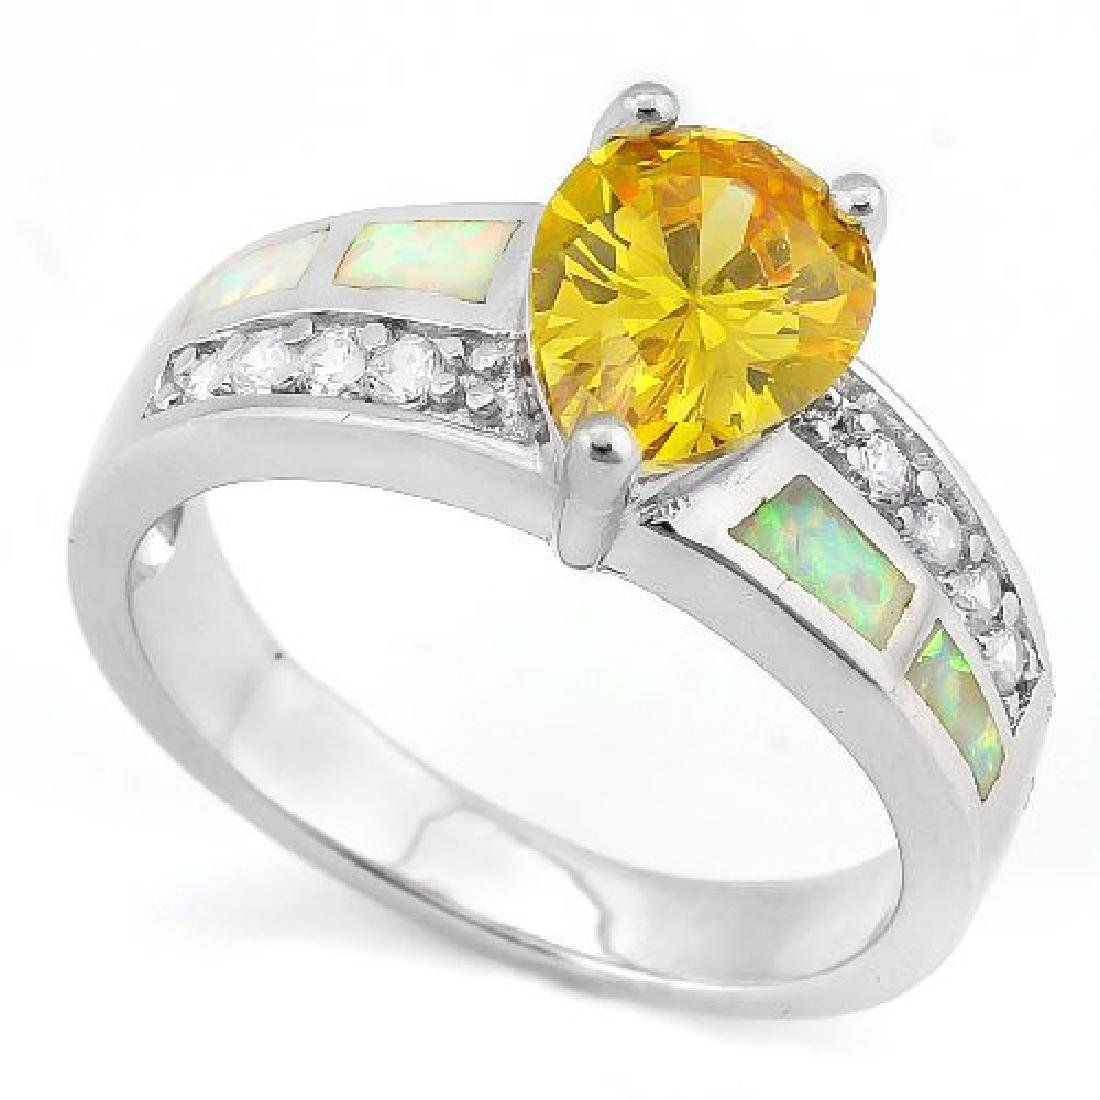 Pear Cut 3ct Lab Yellow Sapphire Ring with Fire Opal in